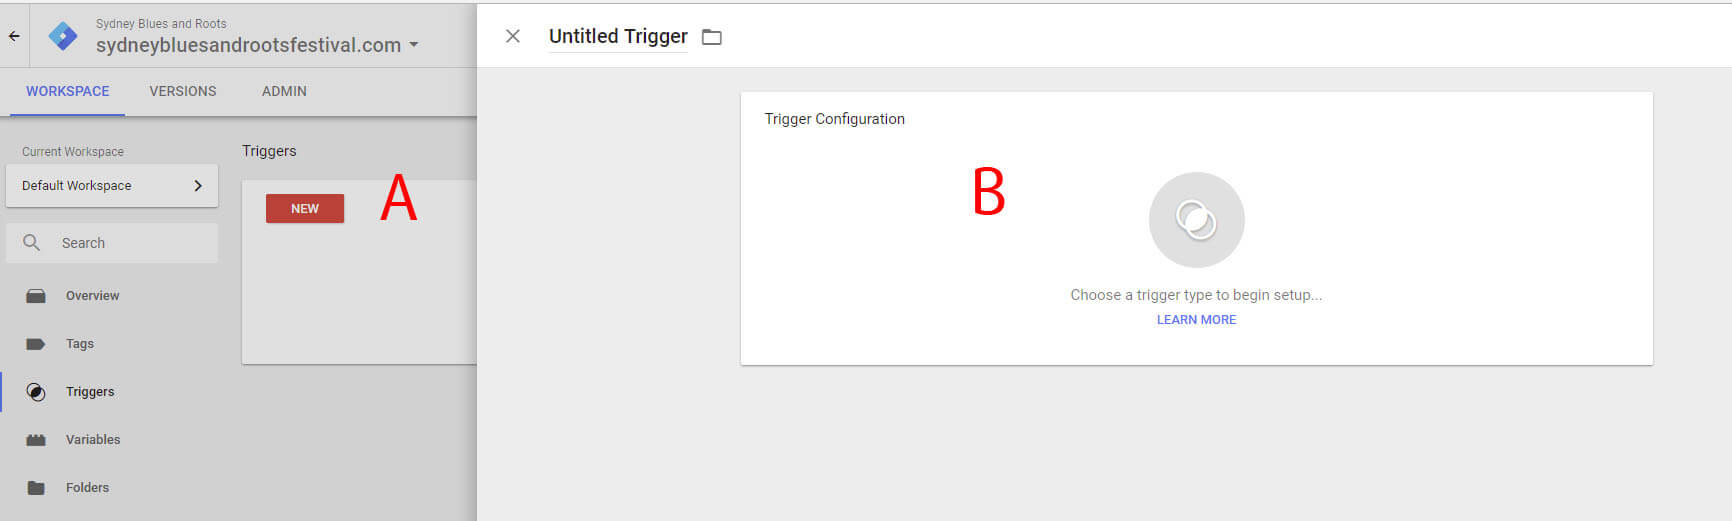 Creating Triggers and Tags Step 4